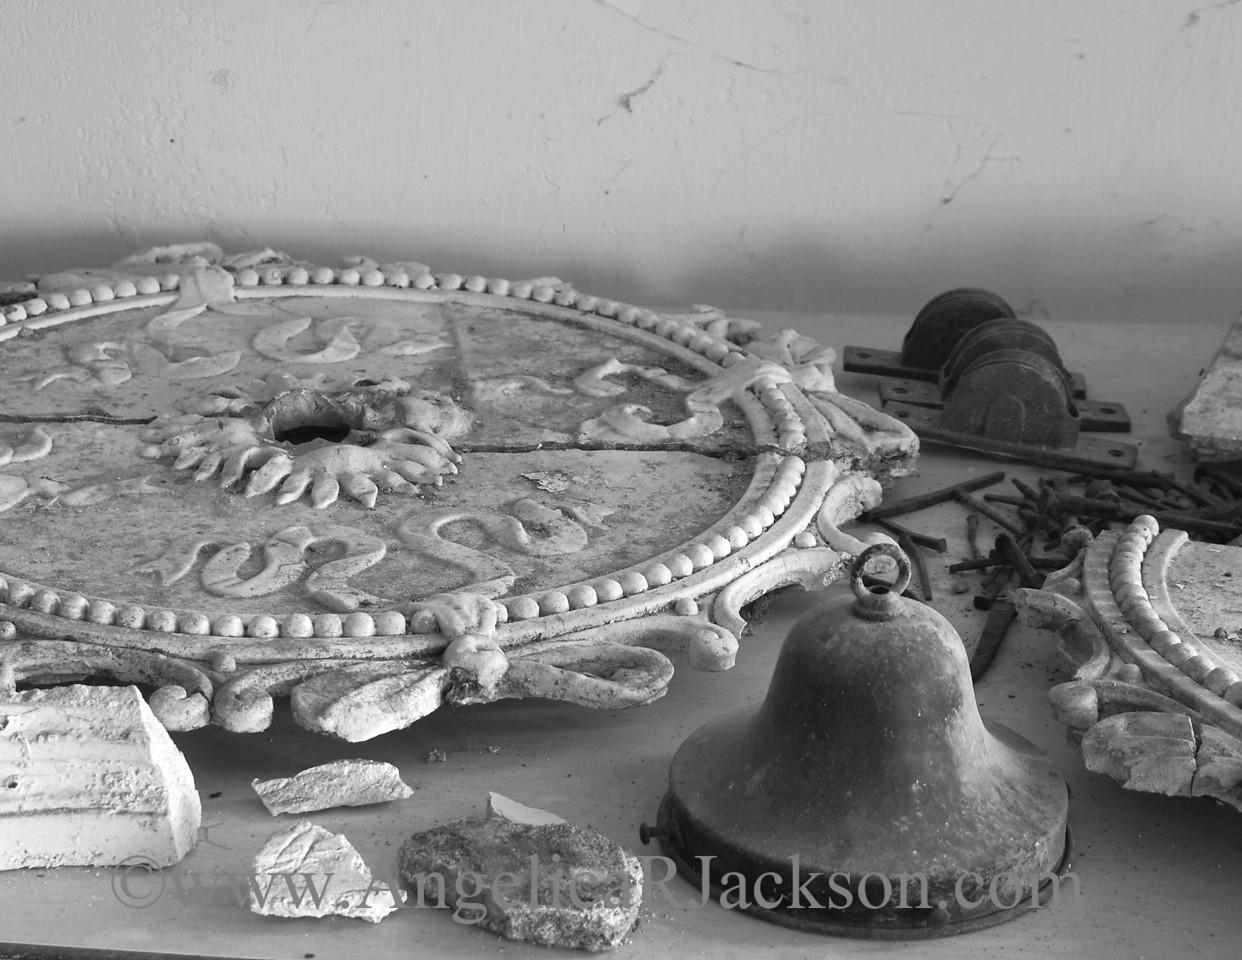 """""""Fixtures""""<br /> Most of the plaster decorations were crafted in place and could not be easily removed intact, but most fixtures of value were removed after the Castle closed."""